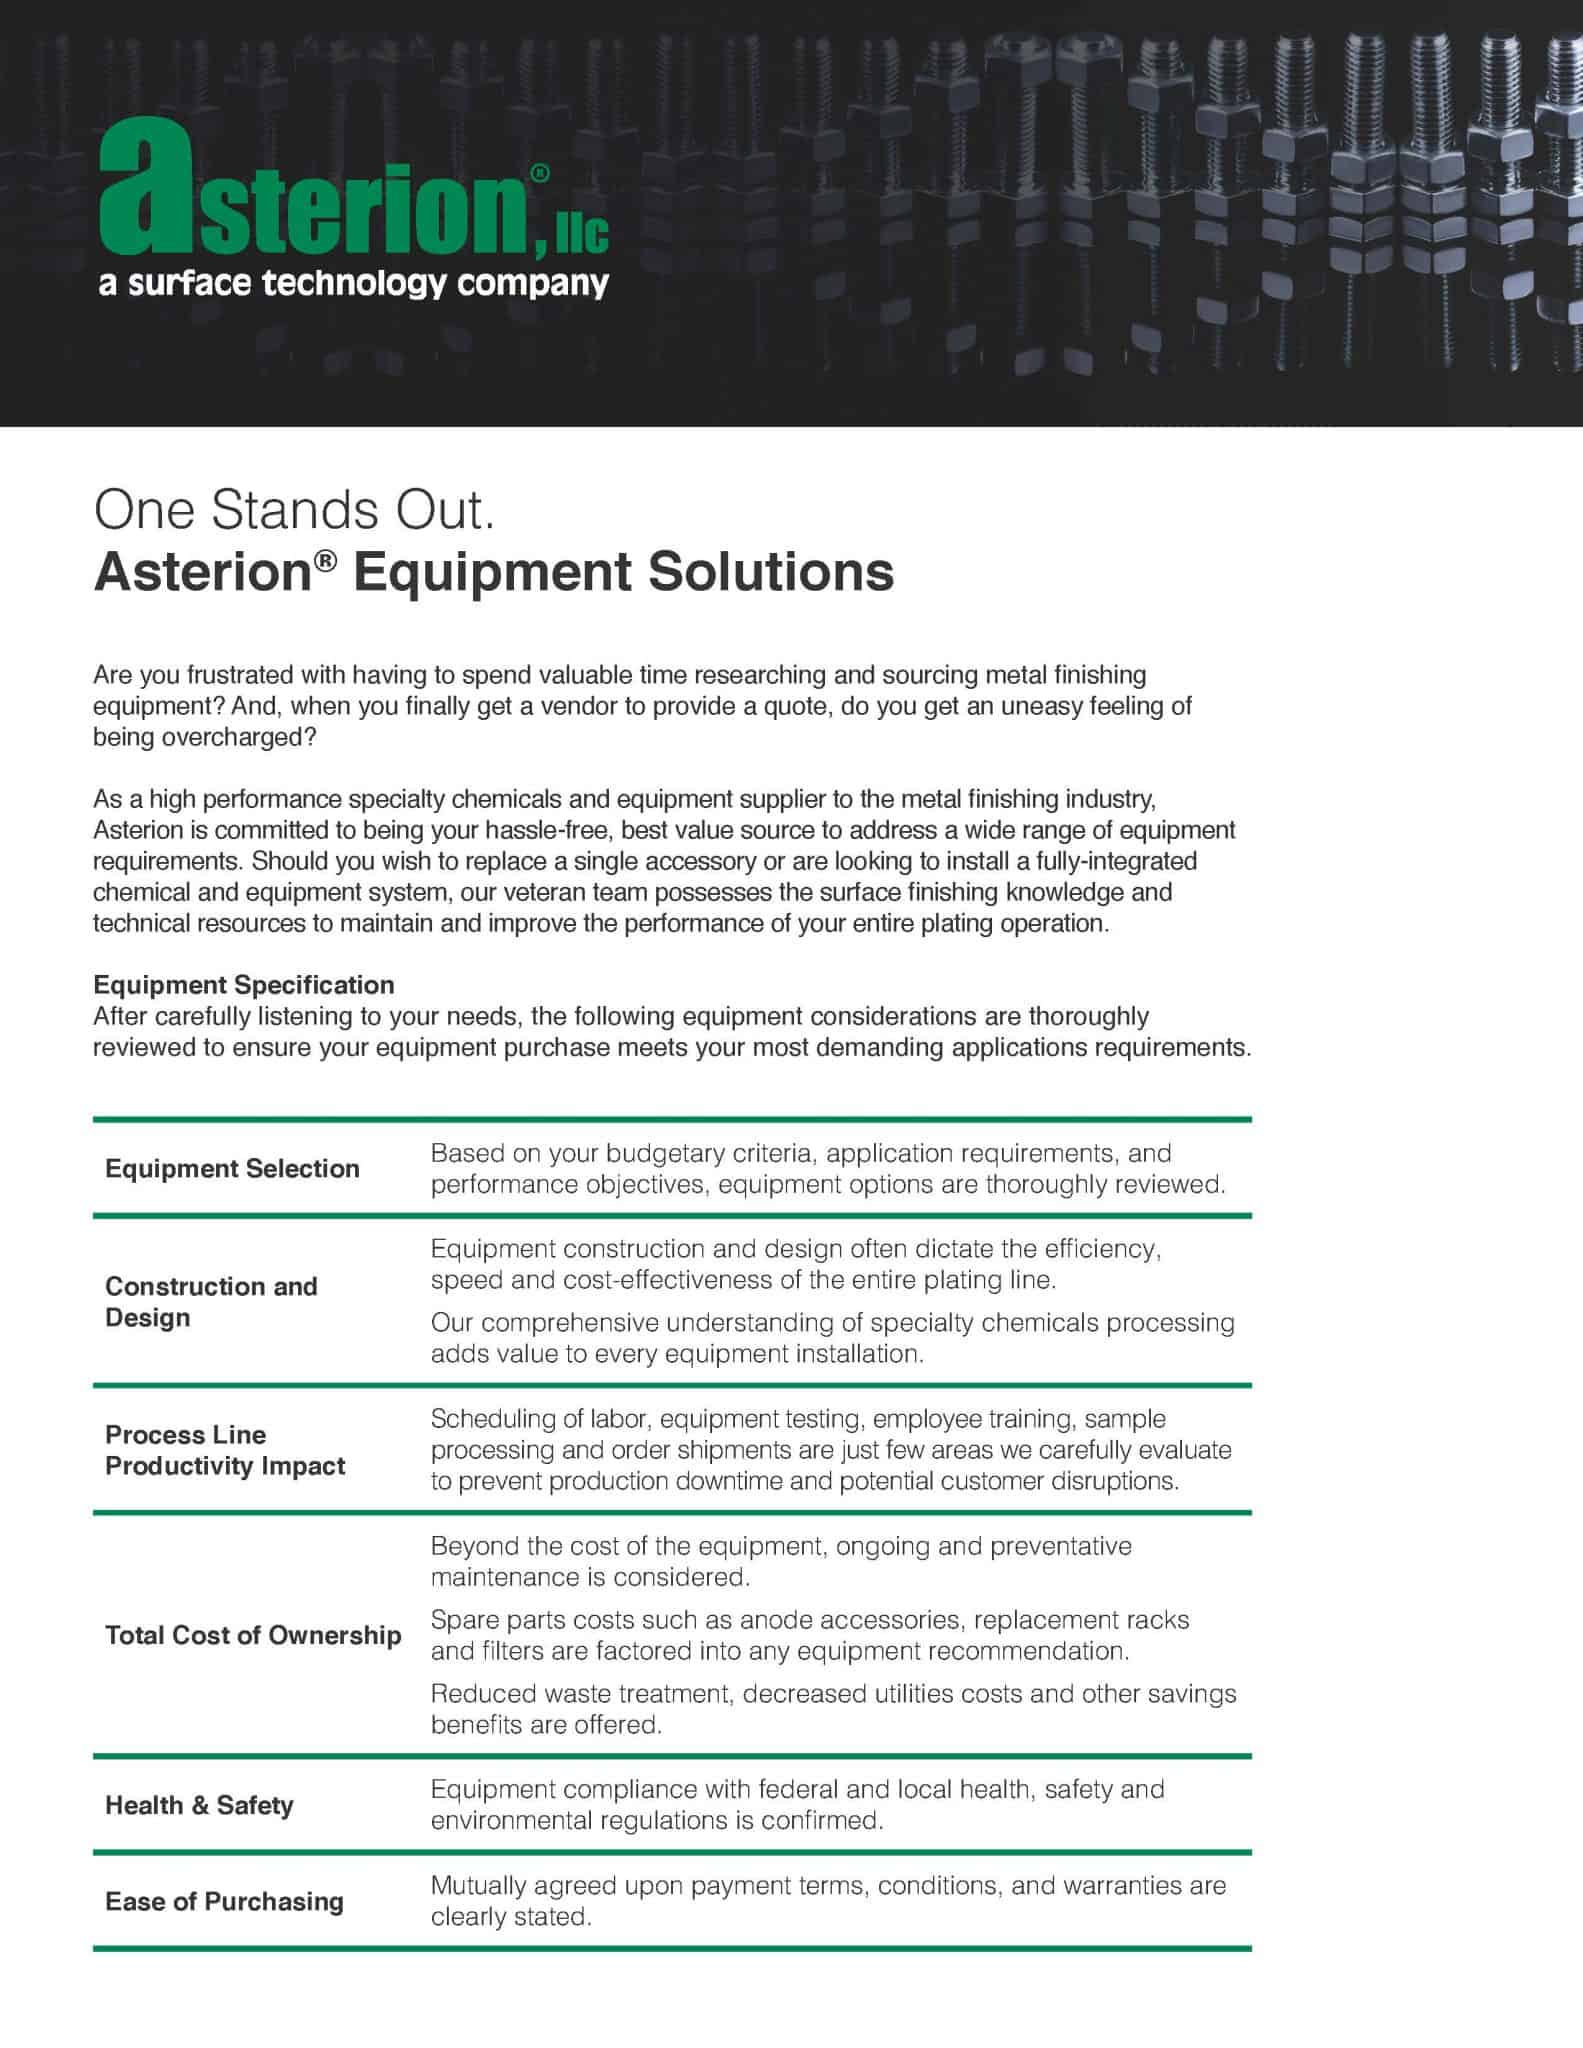 Asterion Publishes Equipment Capabilities Guide | Specialty ... on cost effecient, cost free, cost efficiency, cost of smoking, cost icon, cost reduction, cost quality, cost analysis, cost management,